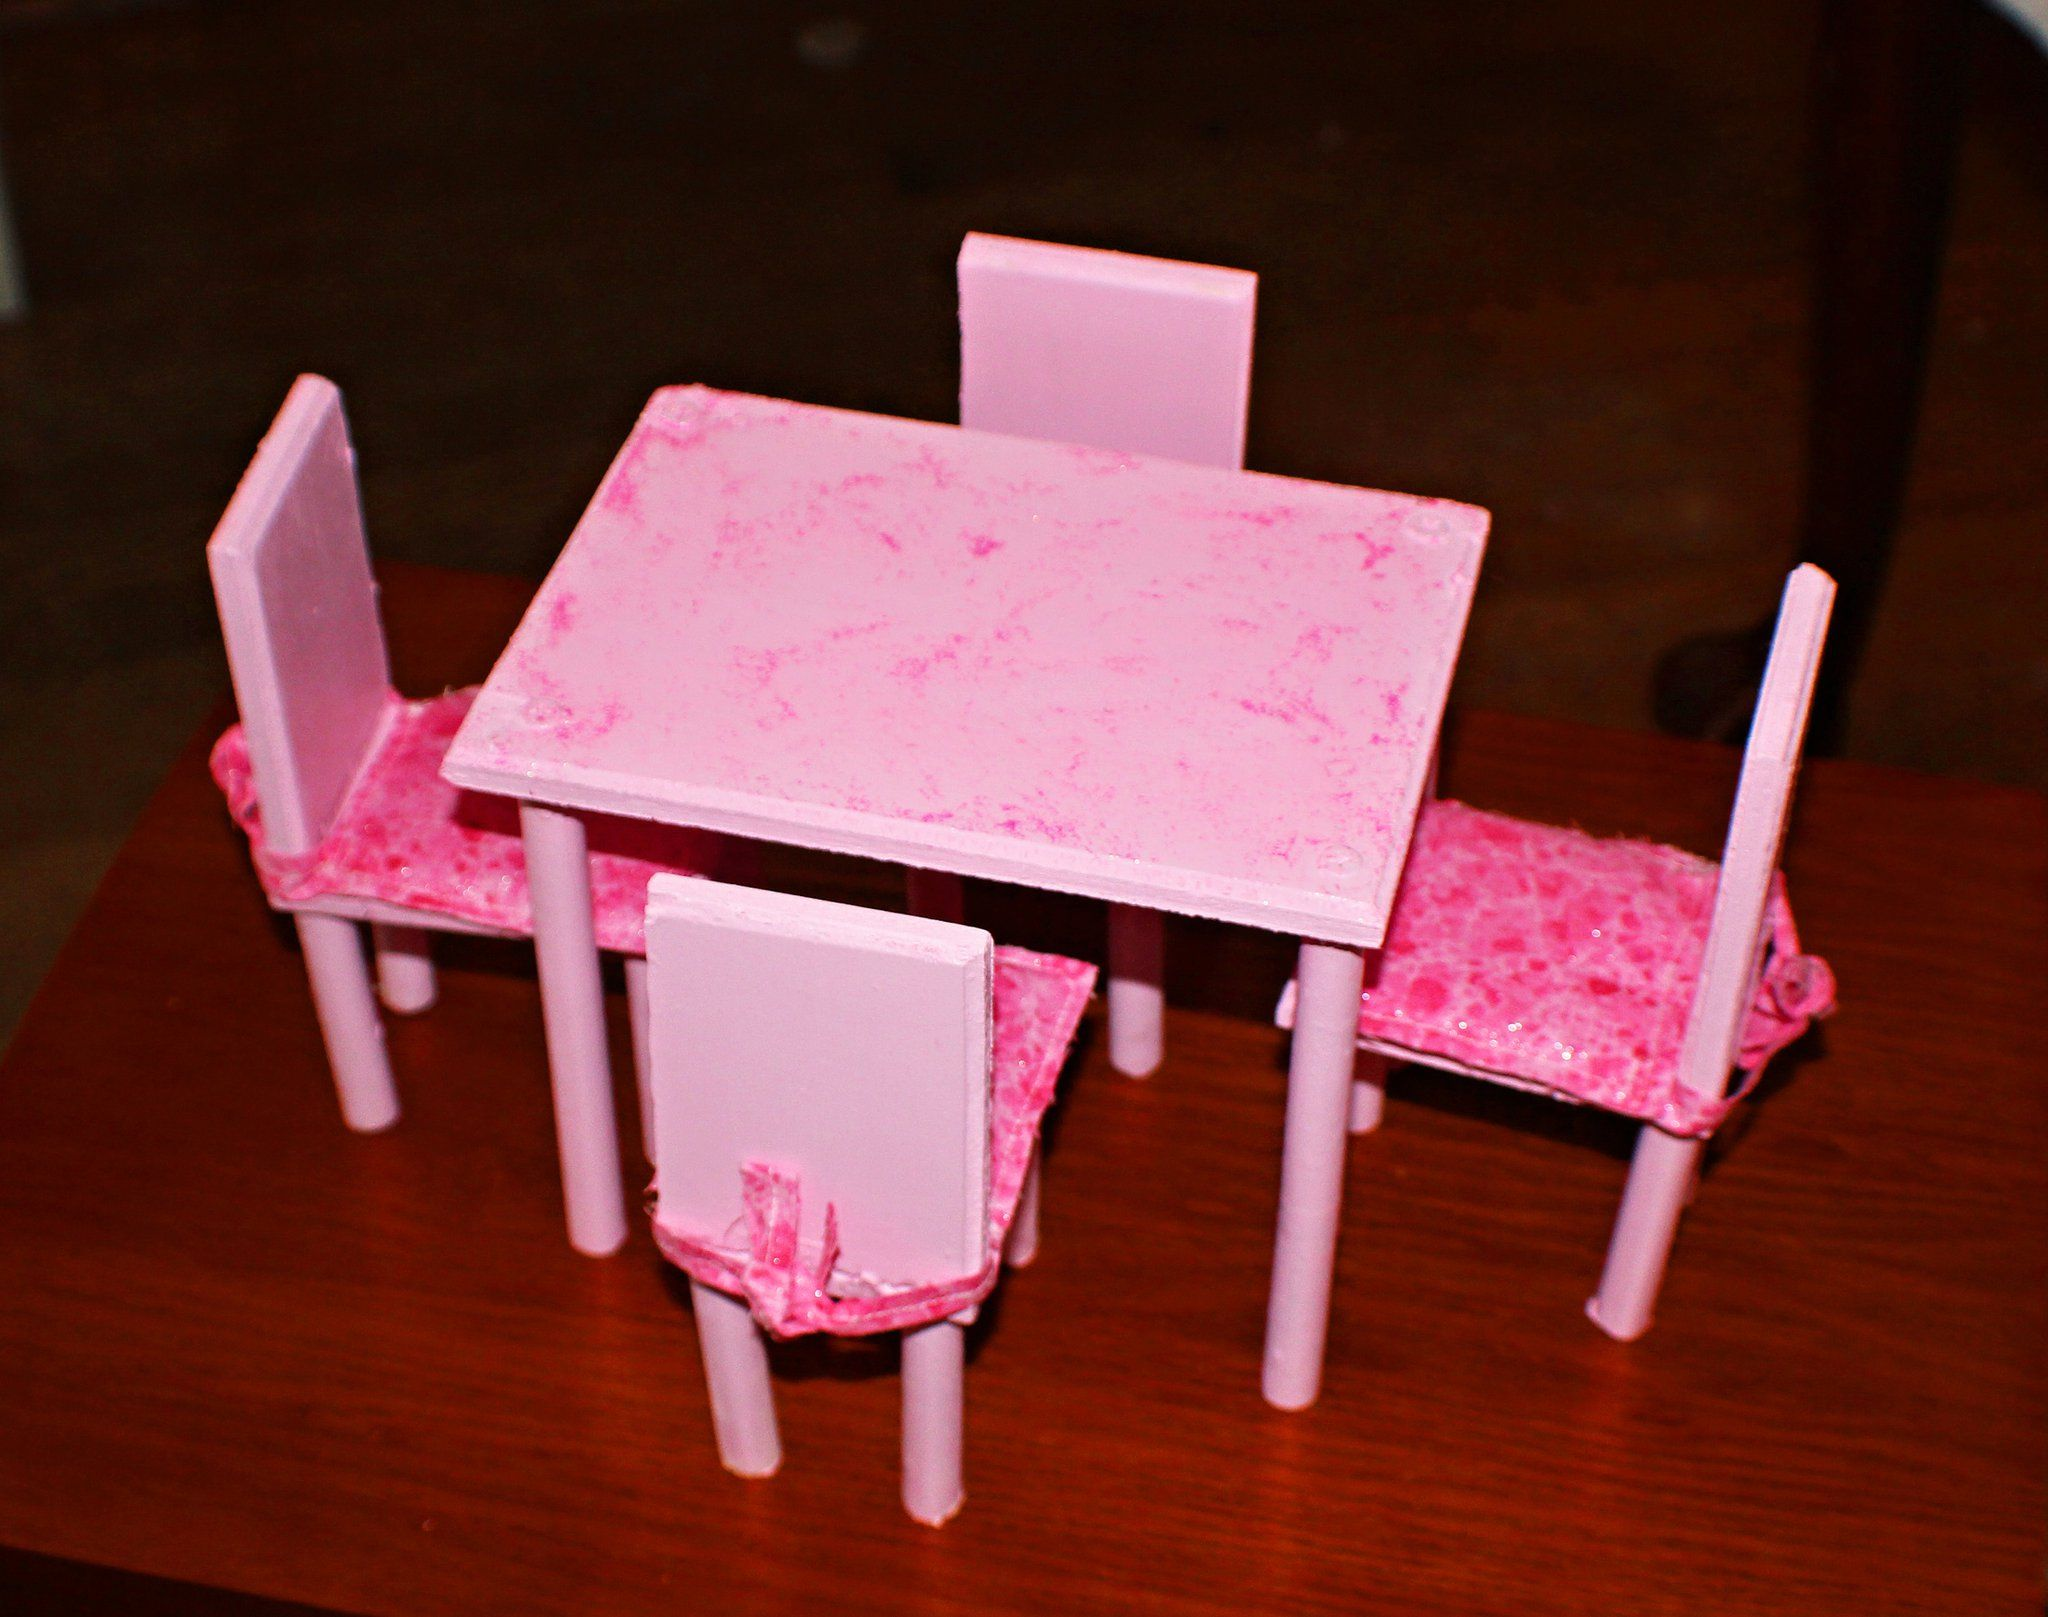 Diy Barbie Dining Room Table Chairs This Was A First Try I 39 M Going To Get Better Wood Make